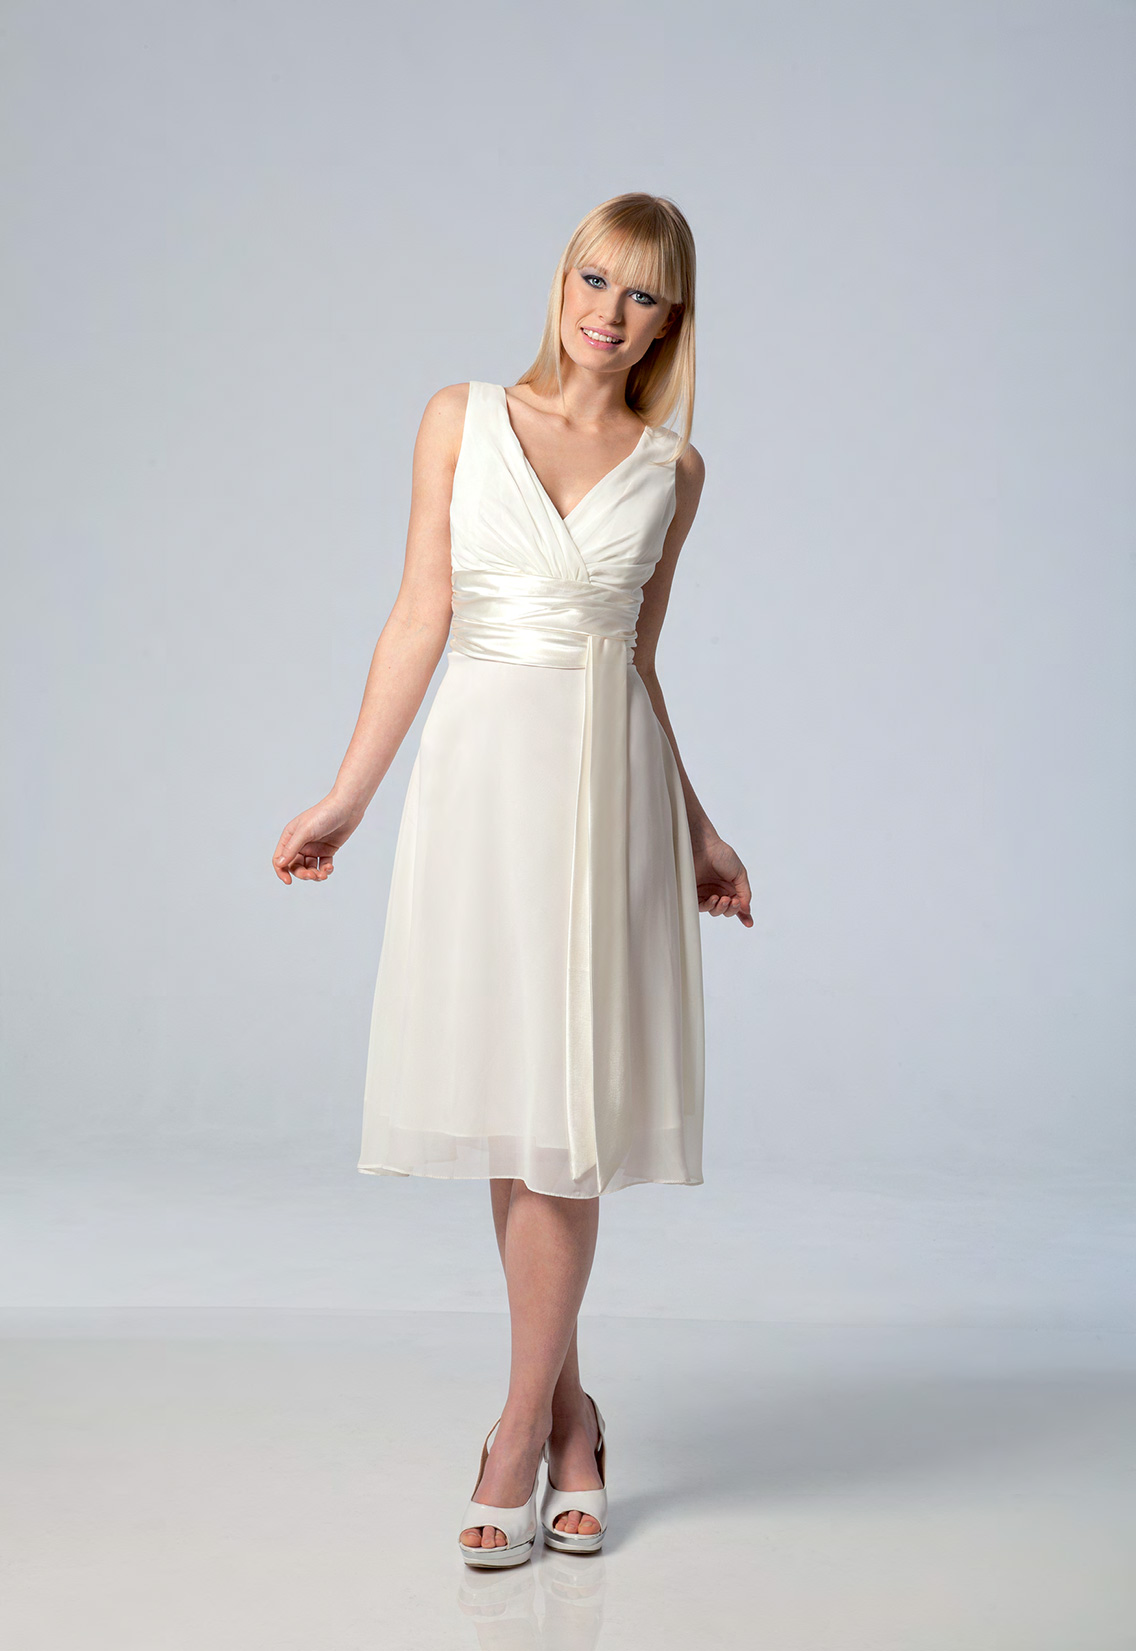 robe blanche de soir e et ceremonie collection 2015 marseille lm gerard